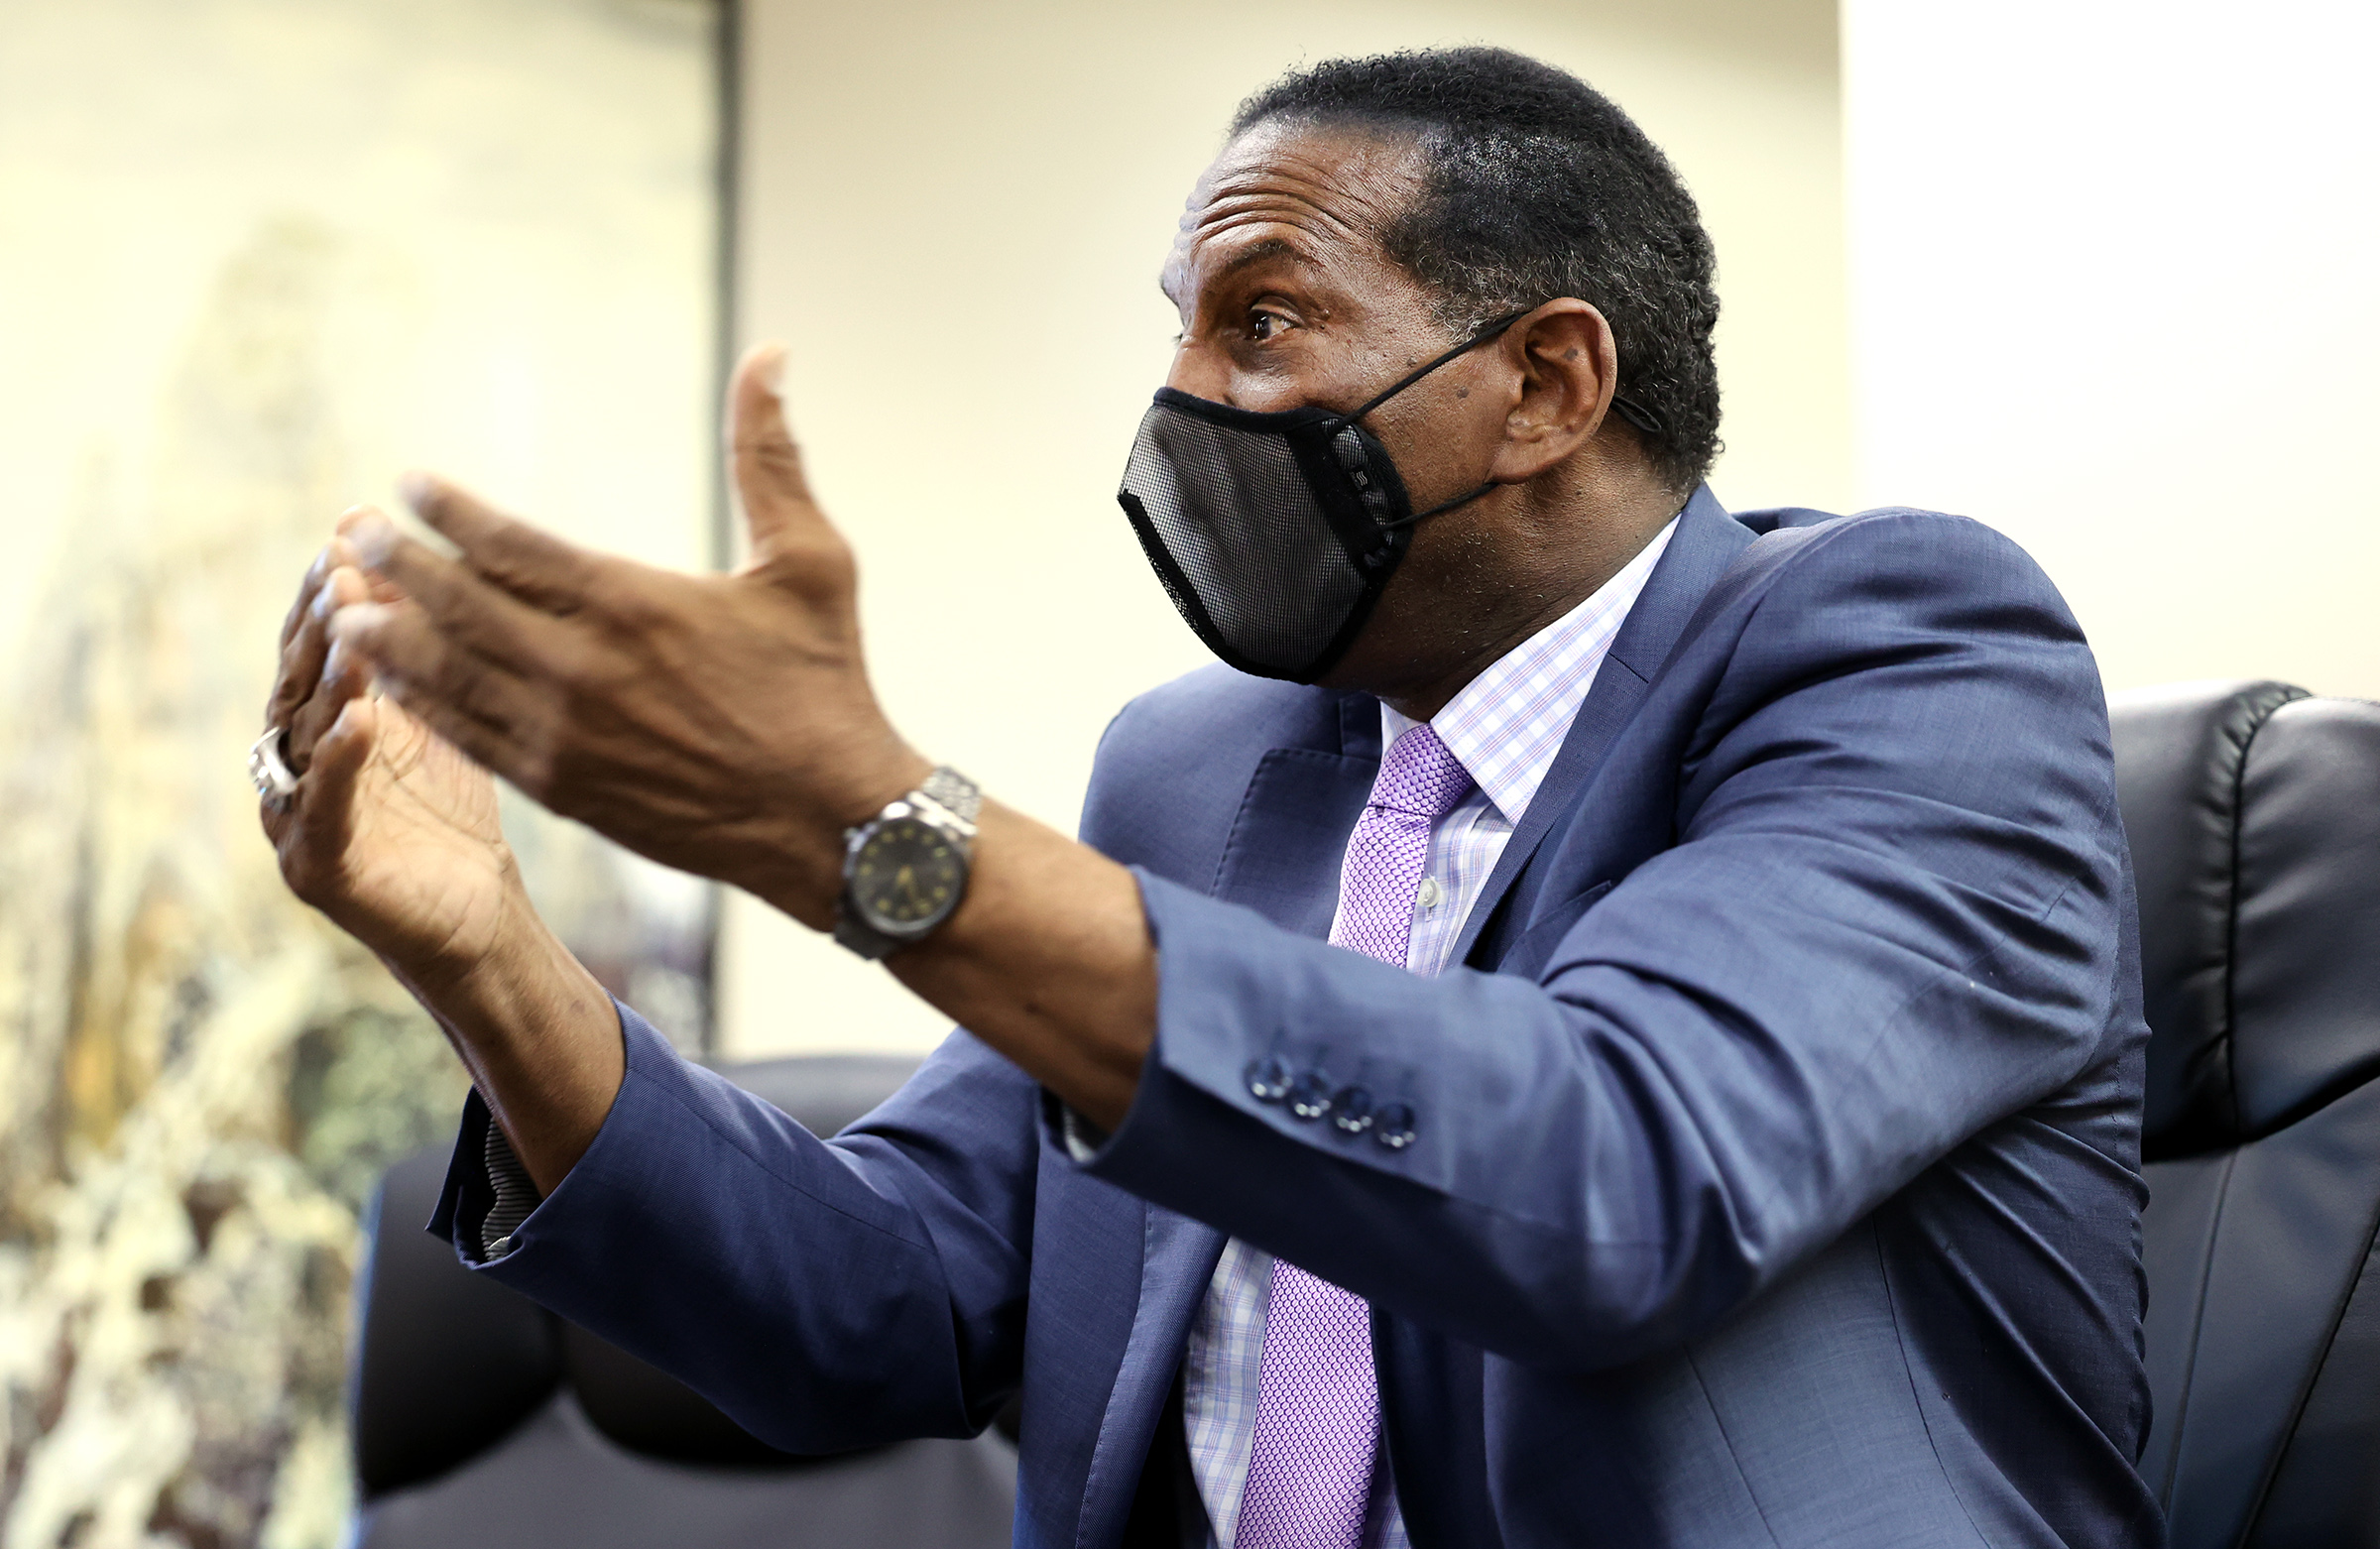 Rep. Burgess Owens R-Utah, talks during an interview at his West Jordan offices on Monday, April 12, 2021.